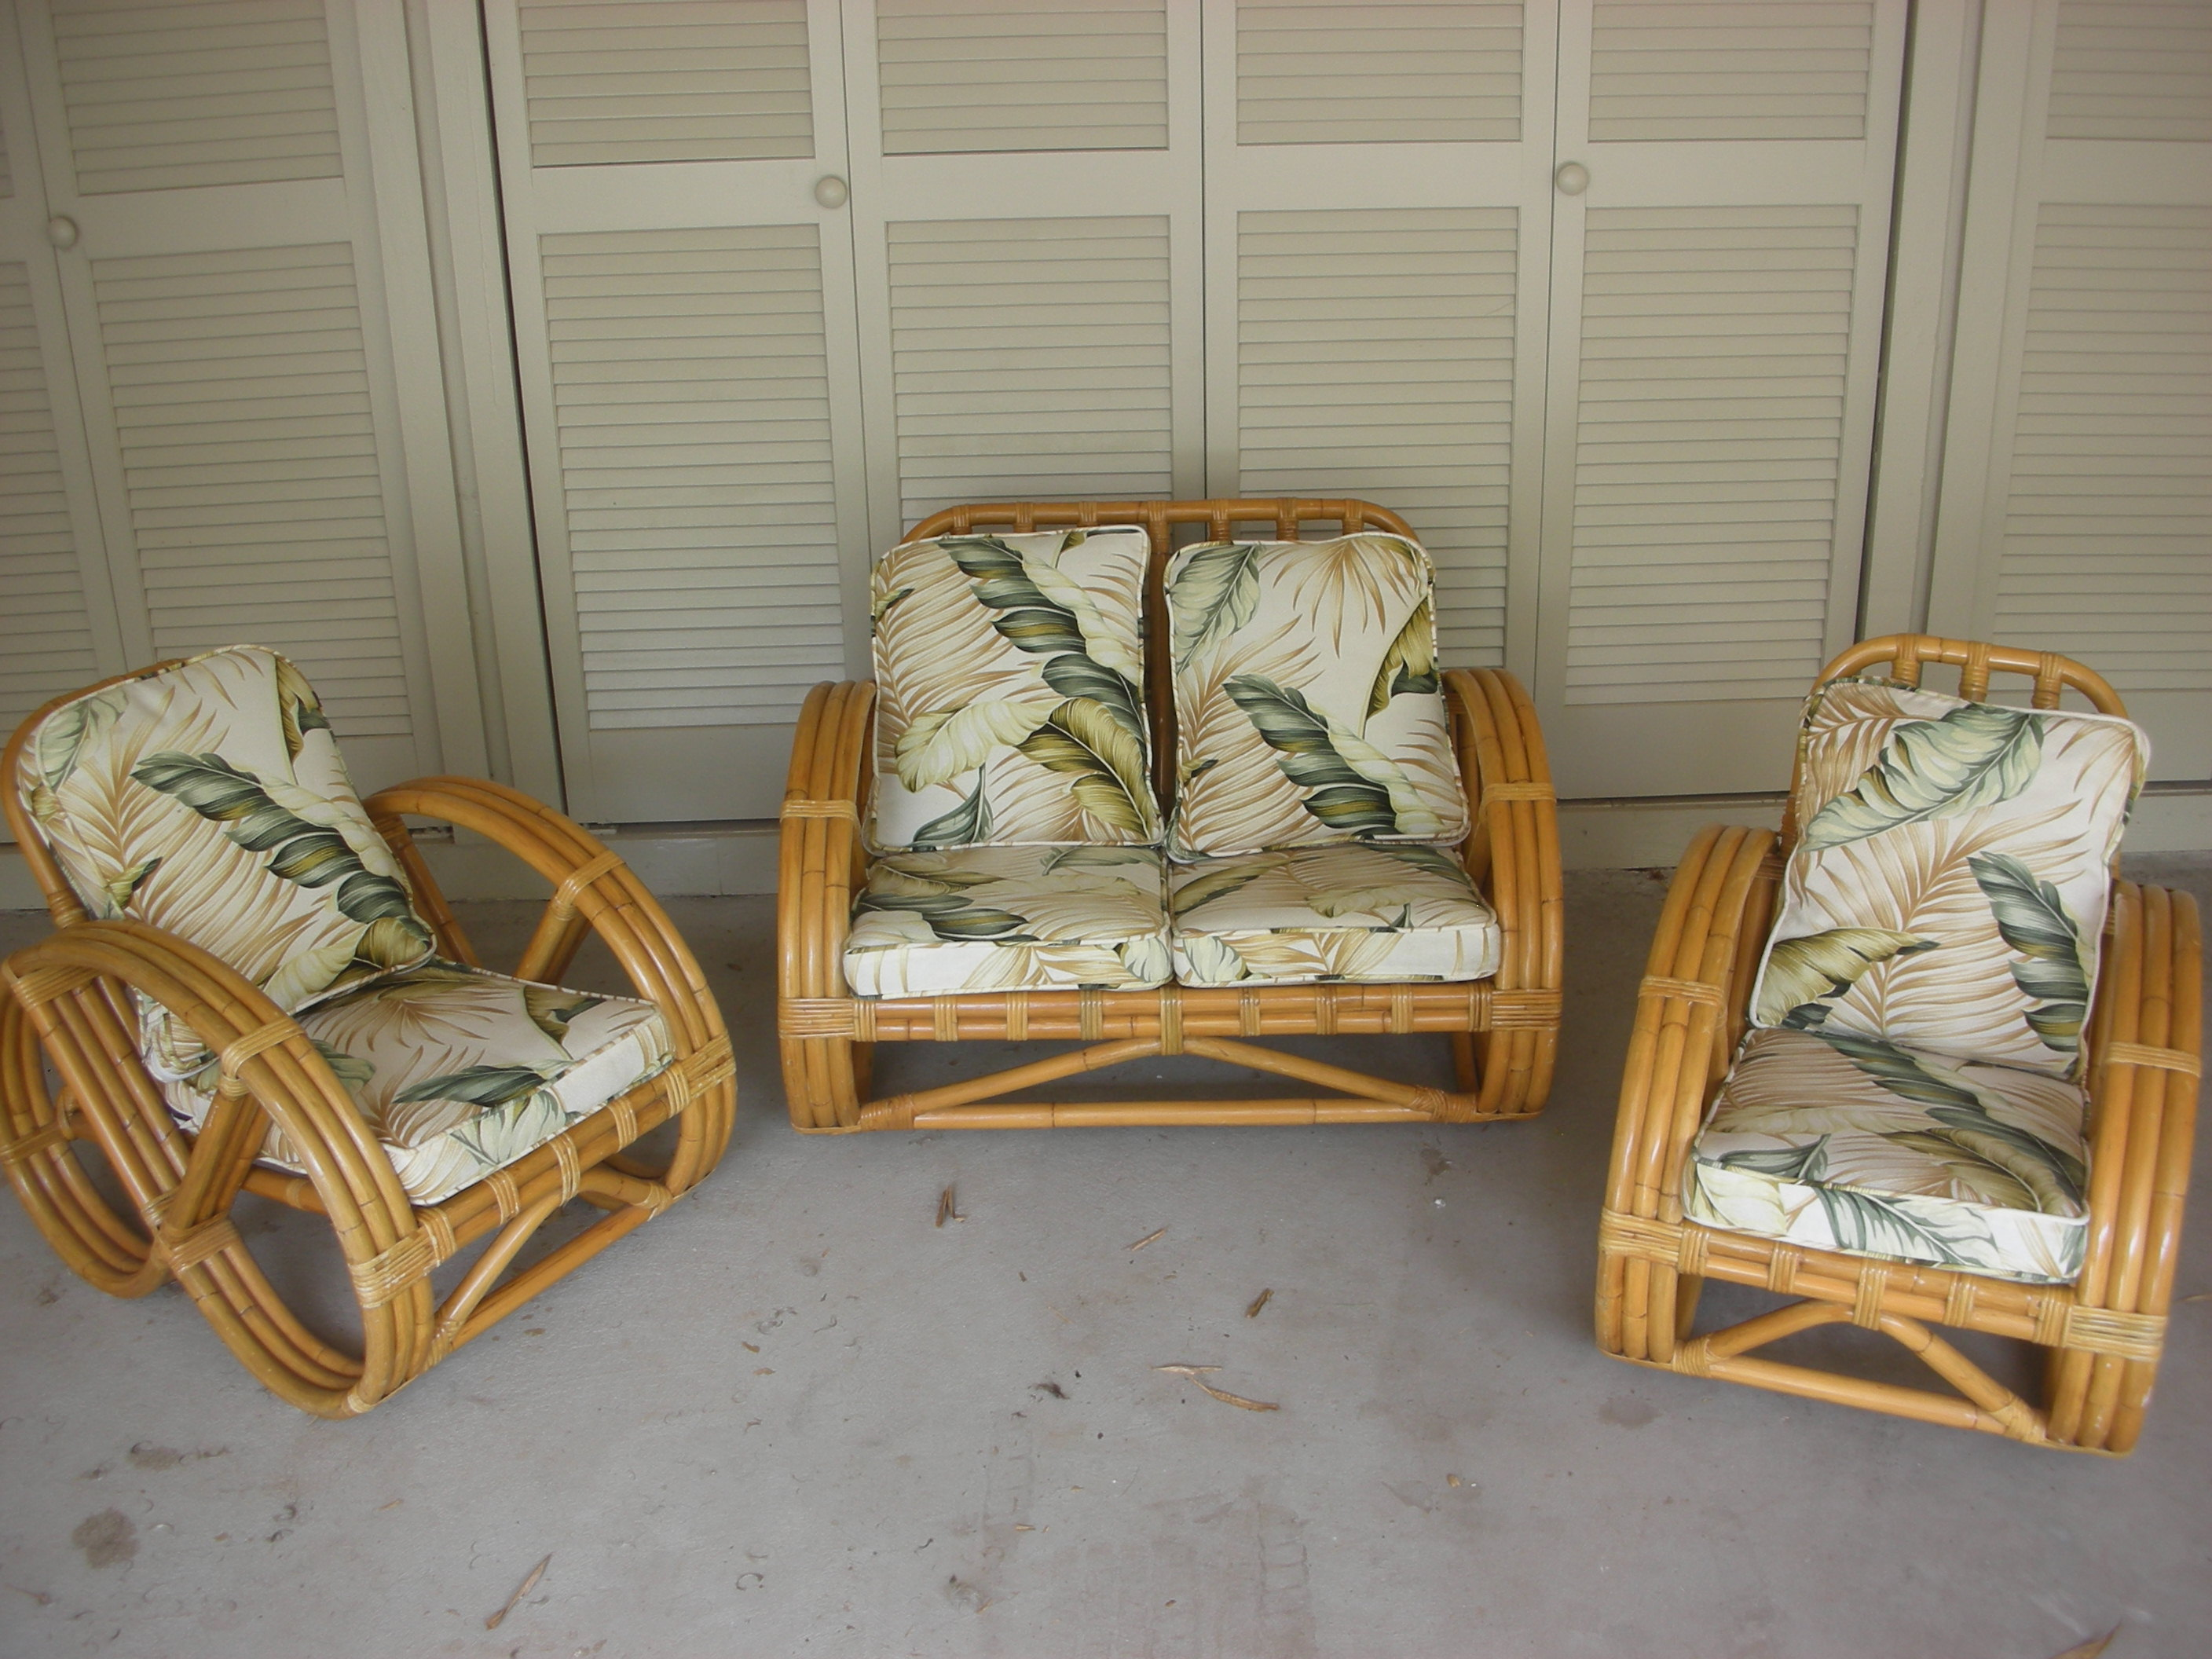 vintage rattan bamboo furniture Vintage Bamboo Furniture vintage rattan bamboo furniture